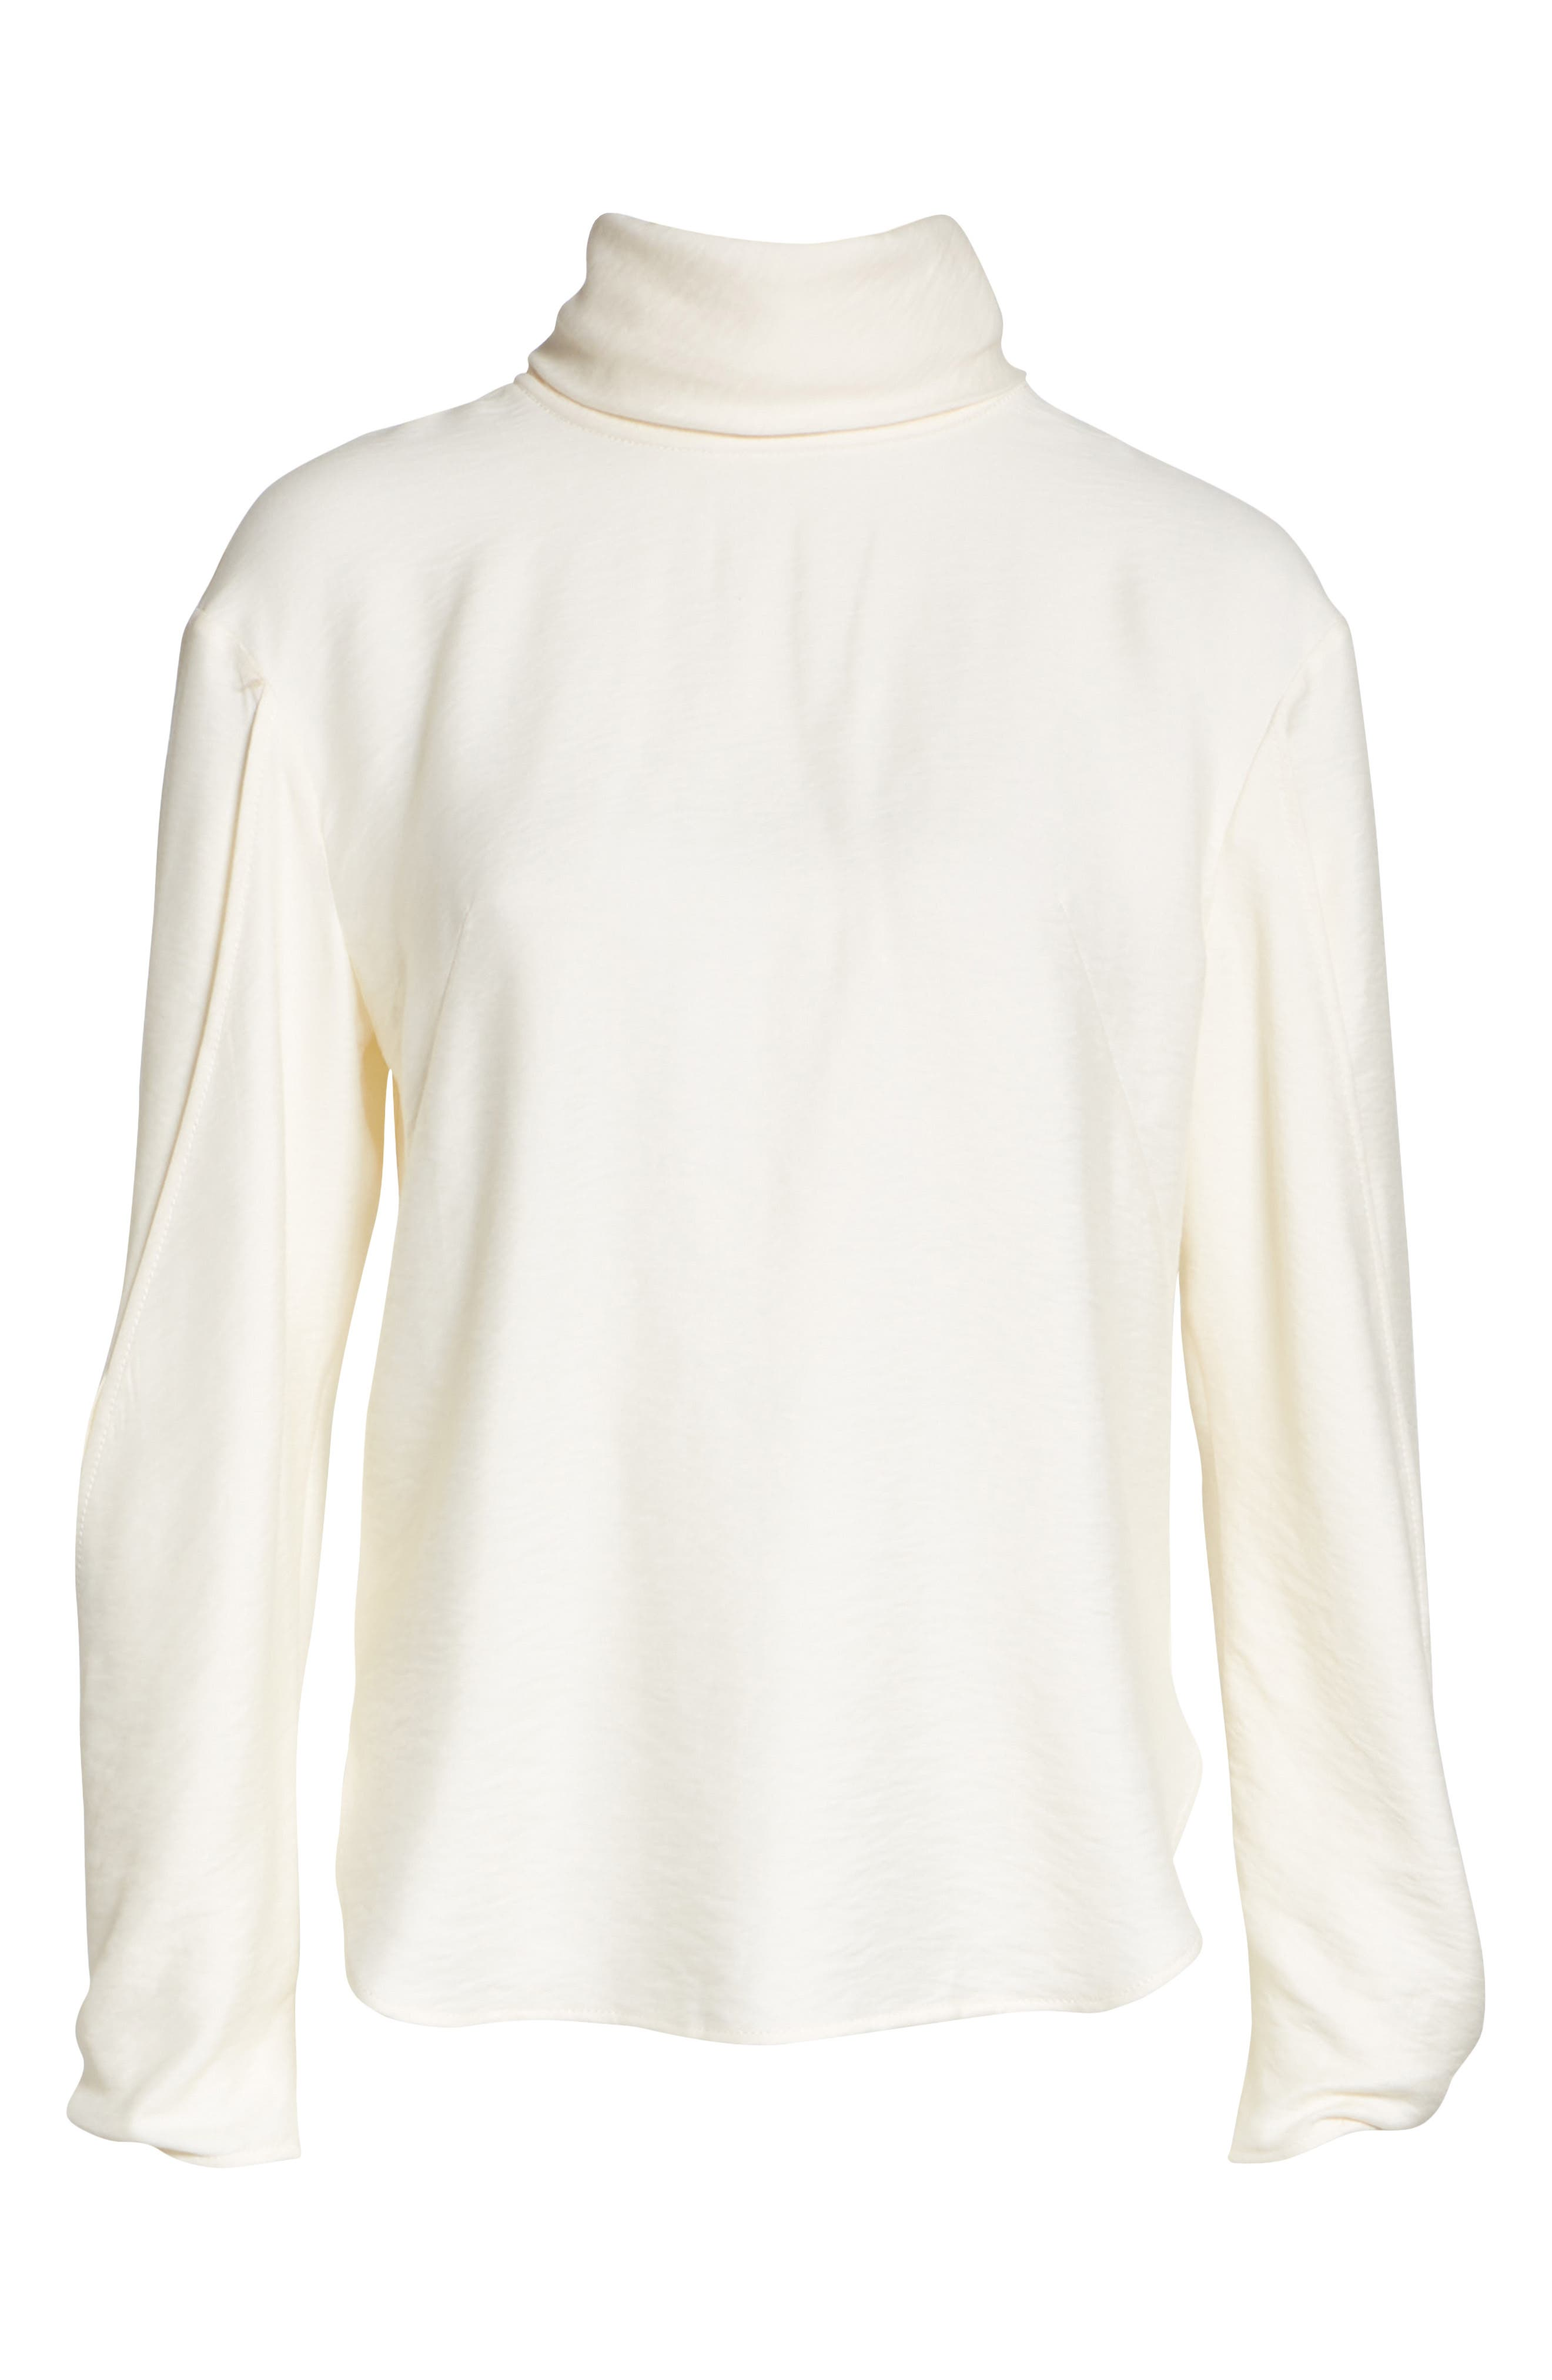 Jessie High Neck Blouse,                             Alternate thumbnail 6, color,                             Rayon Ivory